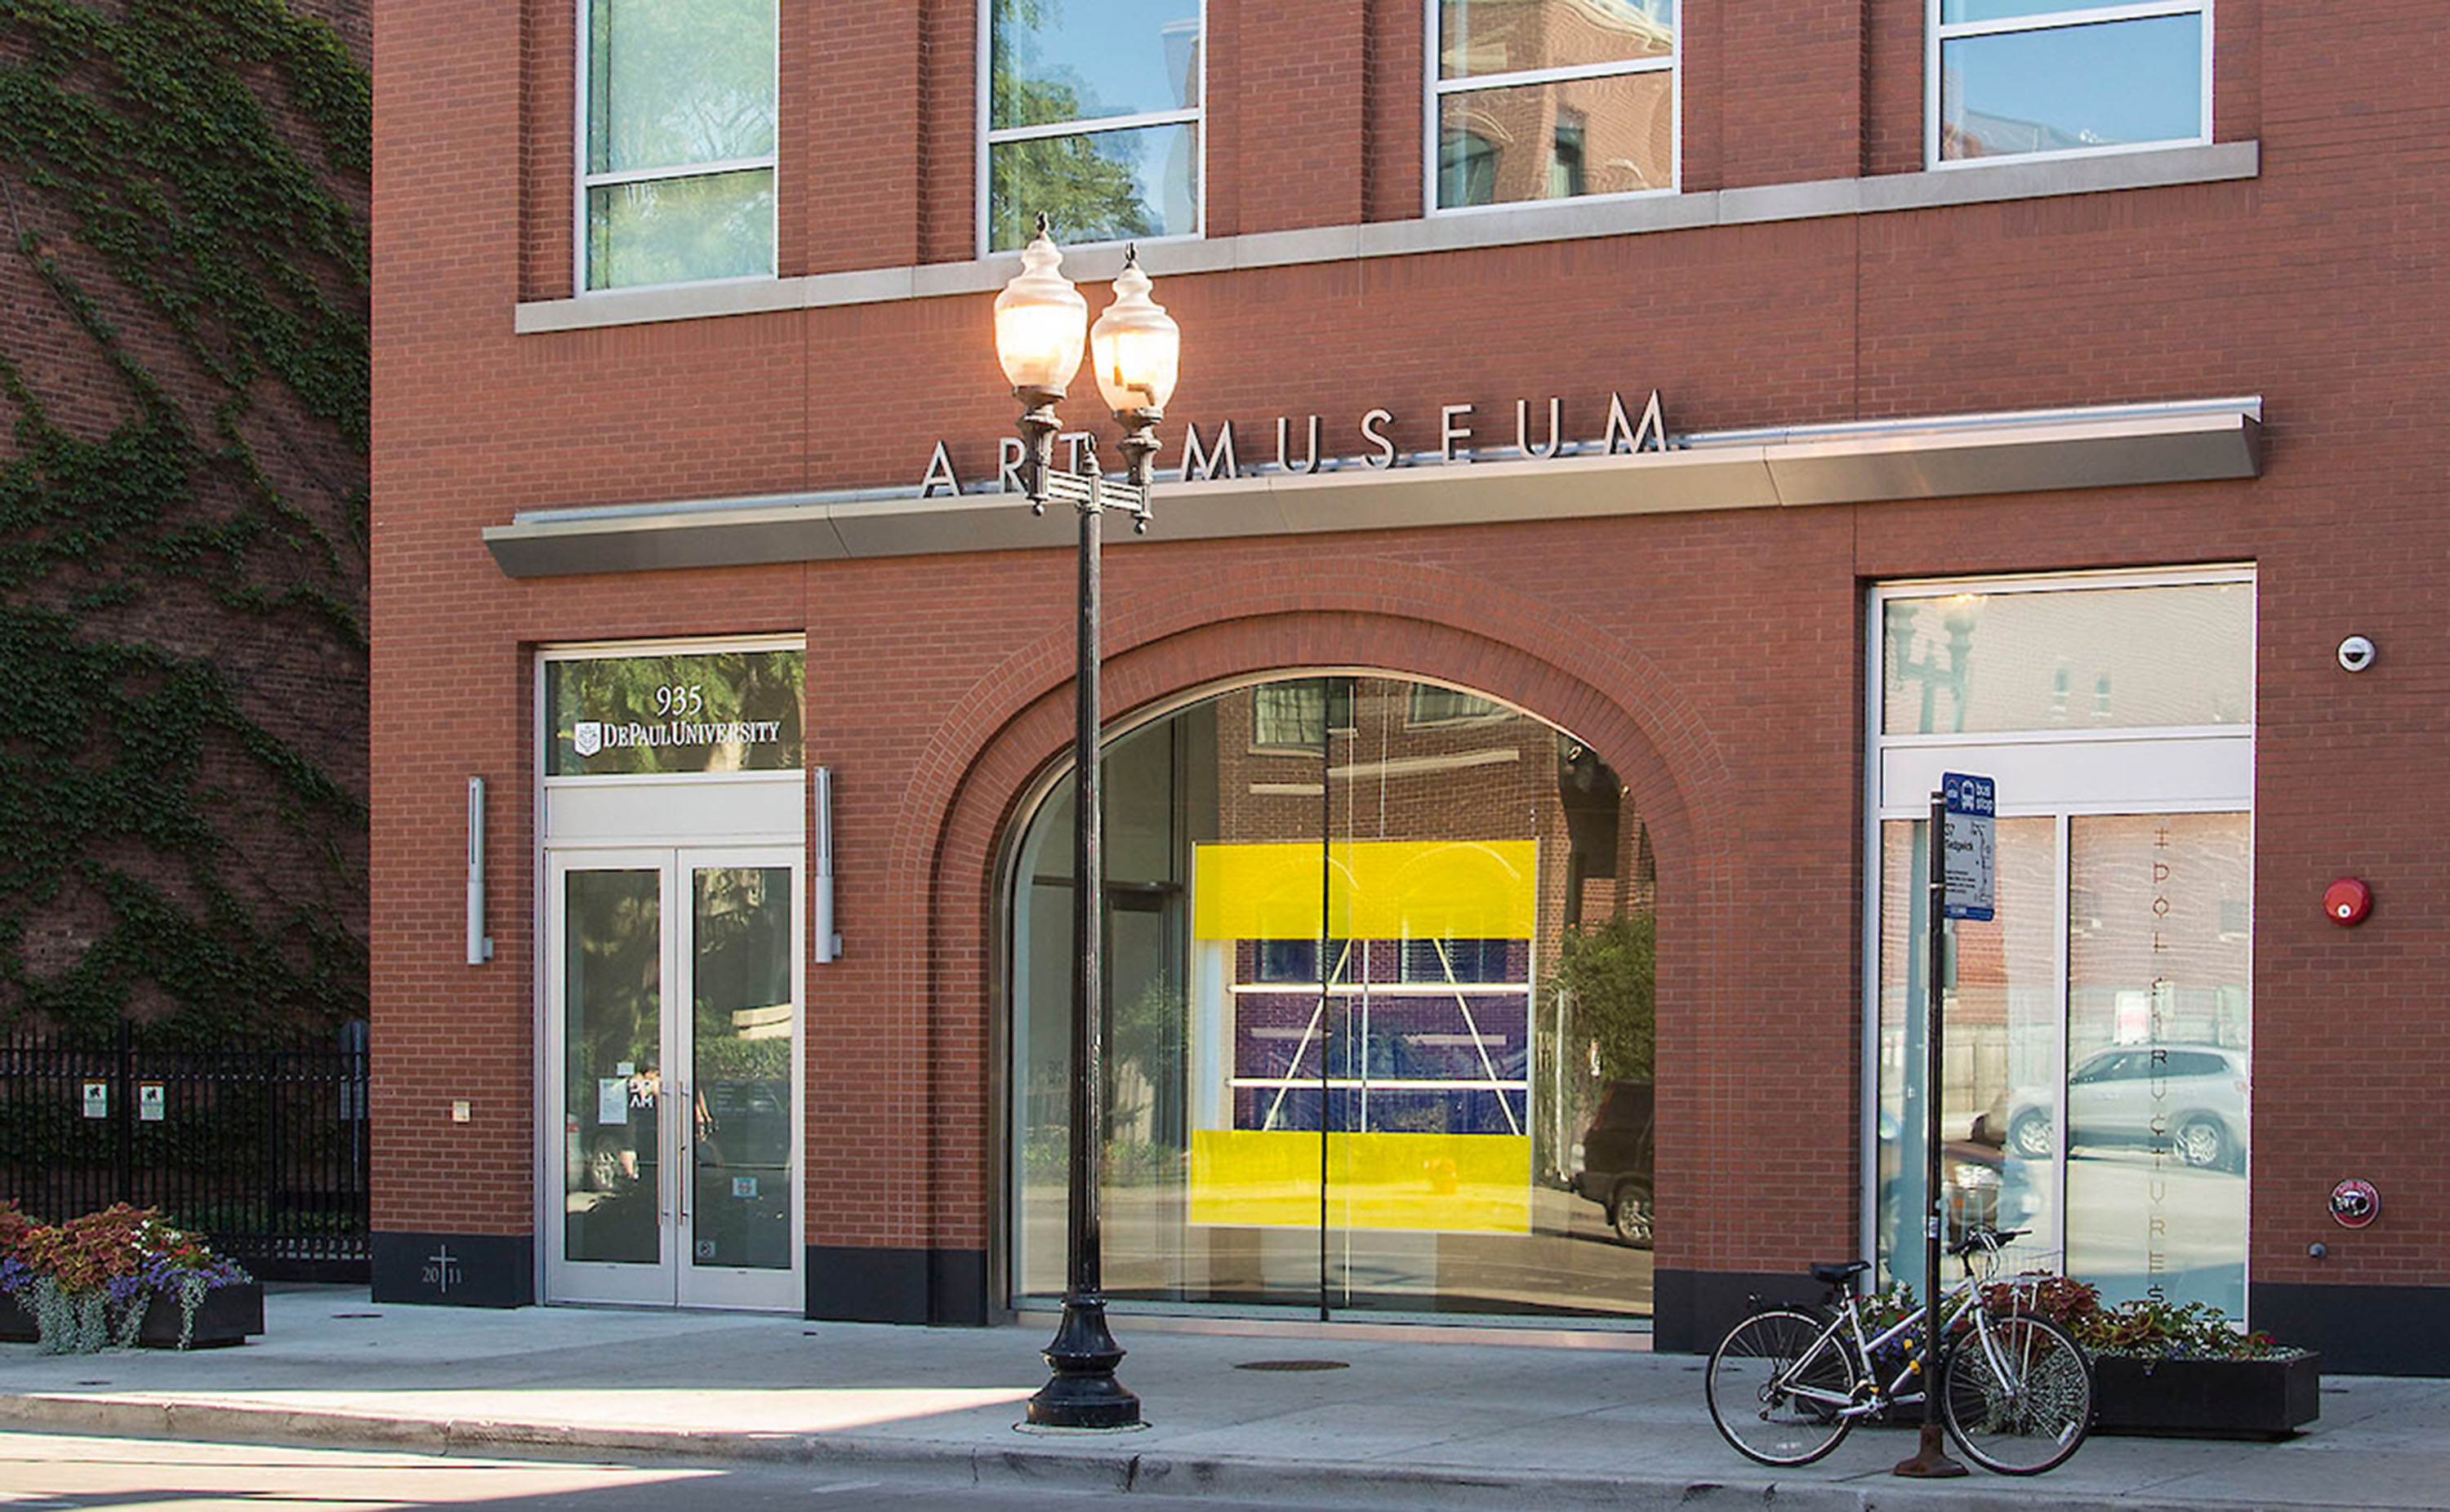 DePaul University Art Museum Hires Assistant Curator, Collection and Exhibition Manager